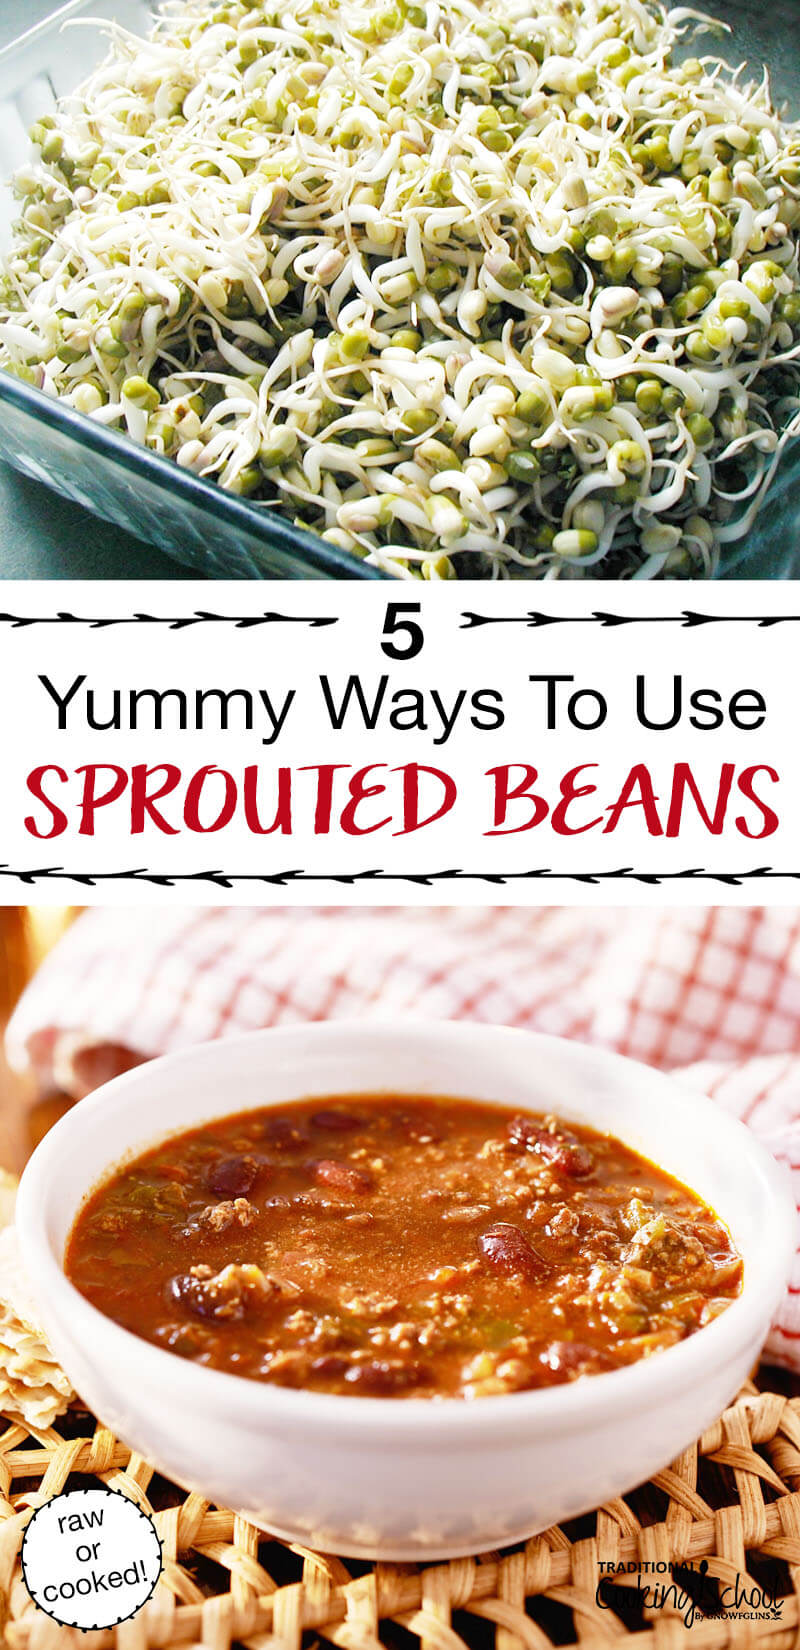 5 Yummy Ways To Use Sprouted Beans | Beans and winter go together. Sprouting gives us fresh, enzyme-rich vegetables during those darker, leaner months -- because sprouted beans digest as vegetables! From salad to soup and beyond, here are 5 yummy ways to use sprouted beans. | TraditionalCookingSchool.com